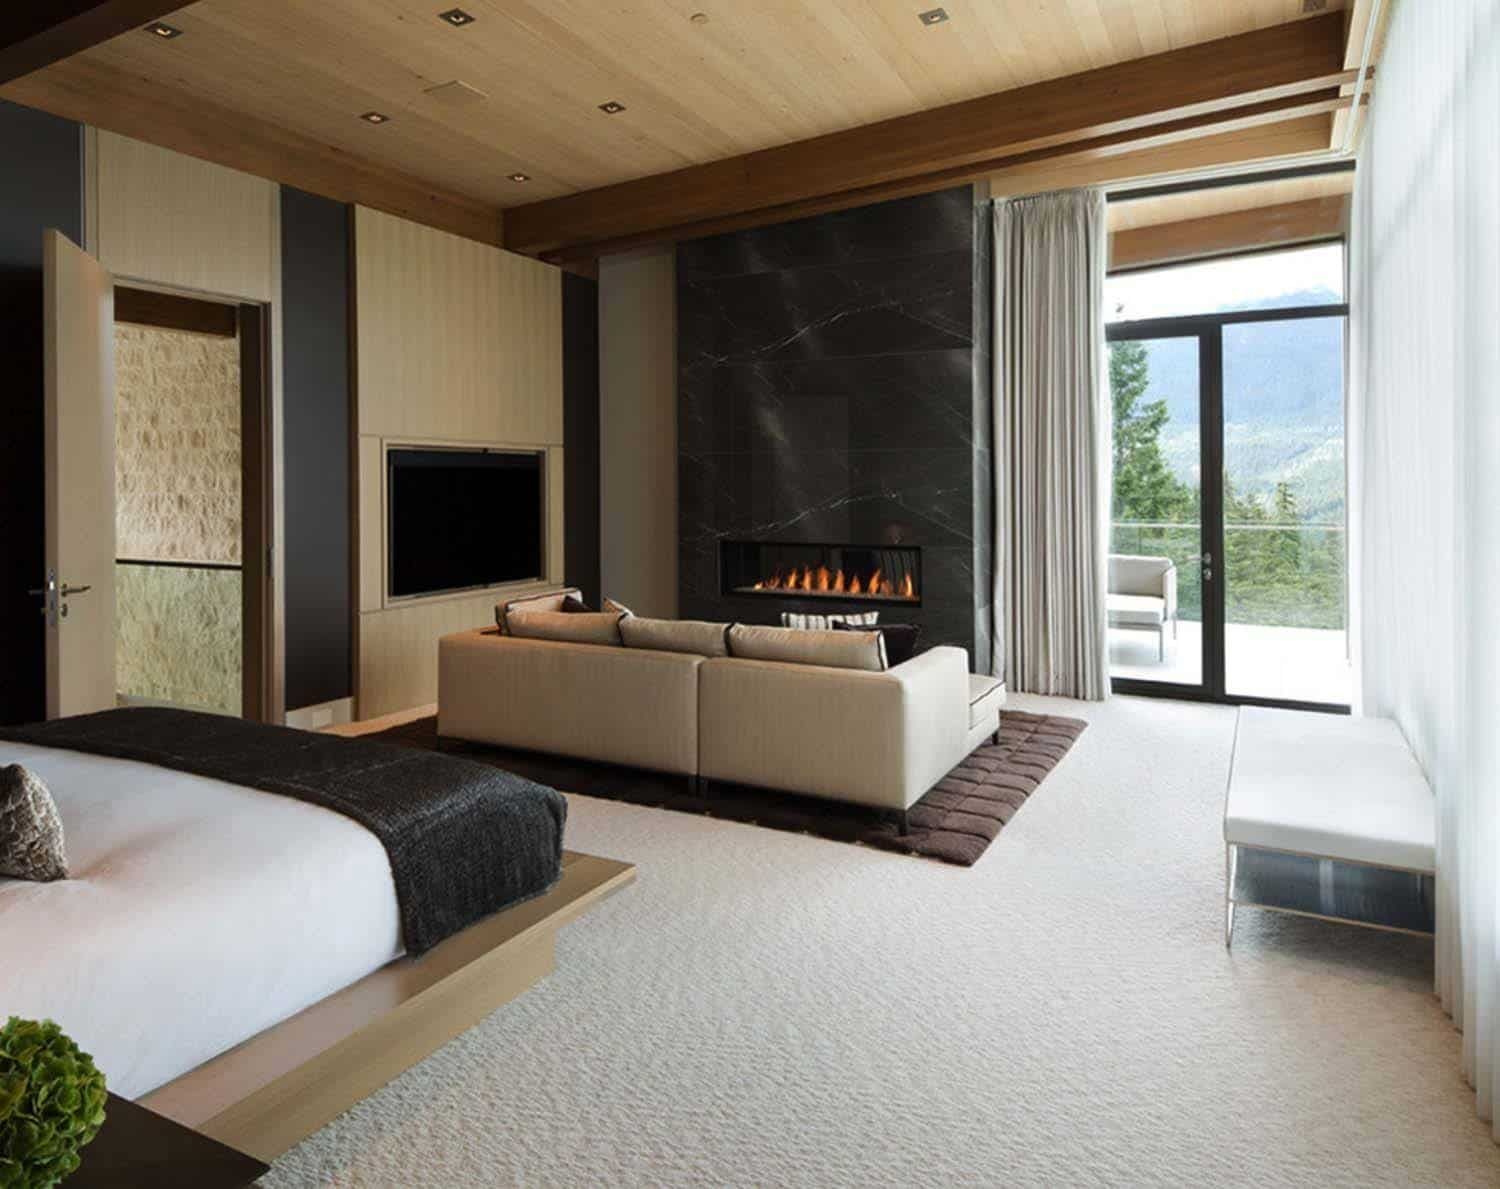 Whistler Residence-Openspace Architecture-25-1 Kindesign